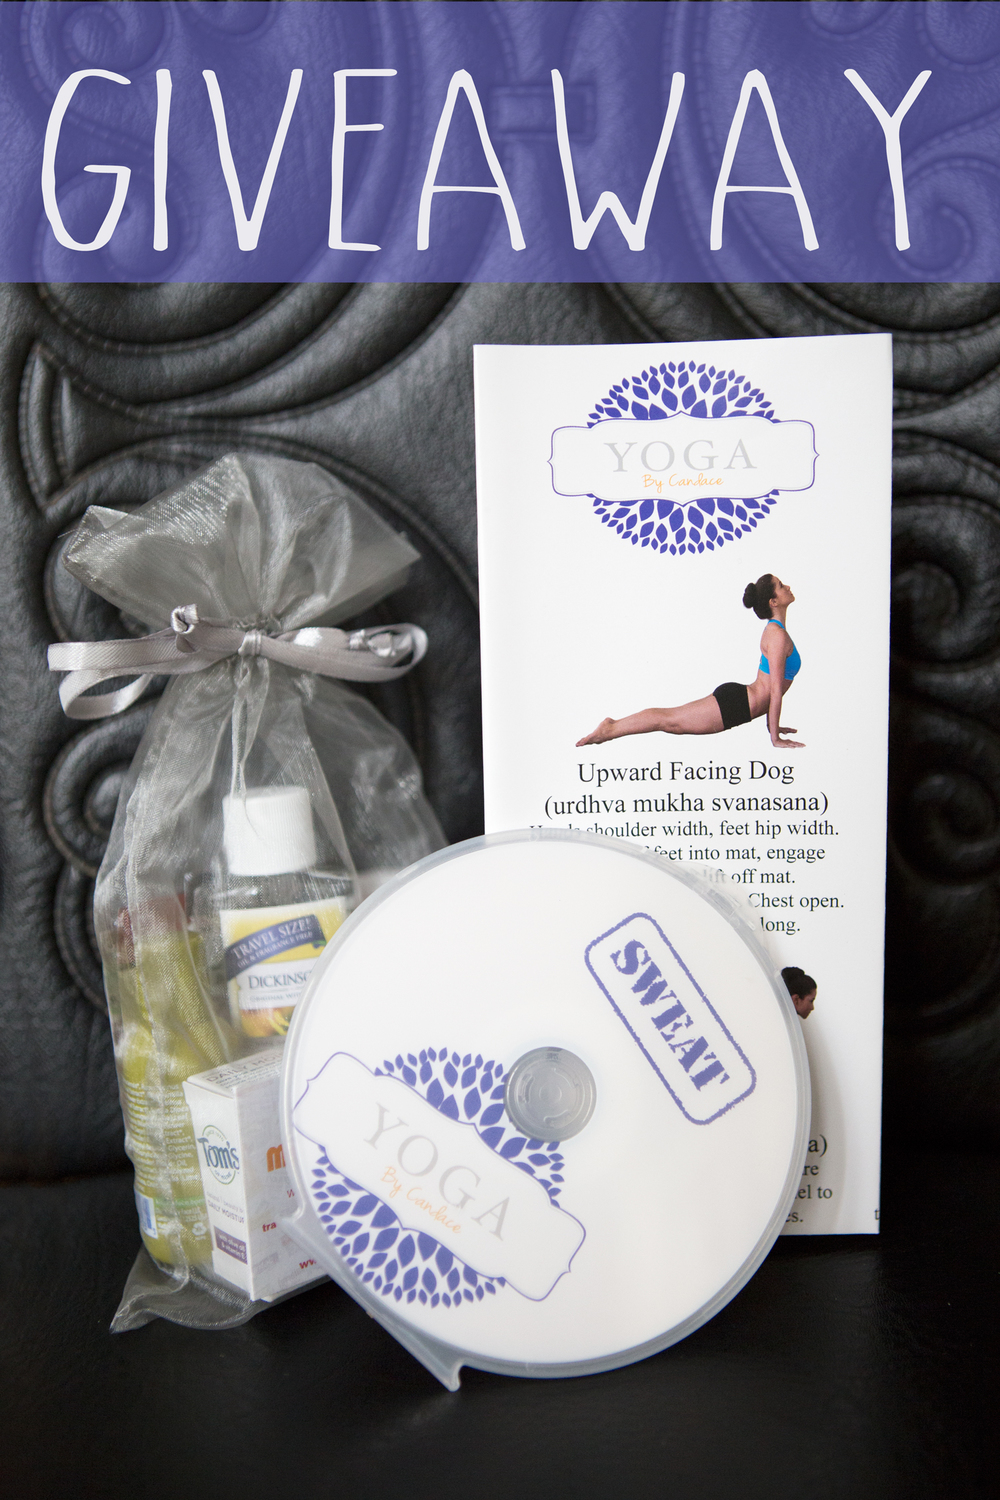 Pin it! A yoga dvd and gift bag giveaway